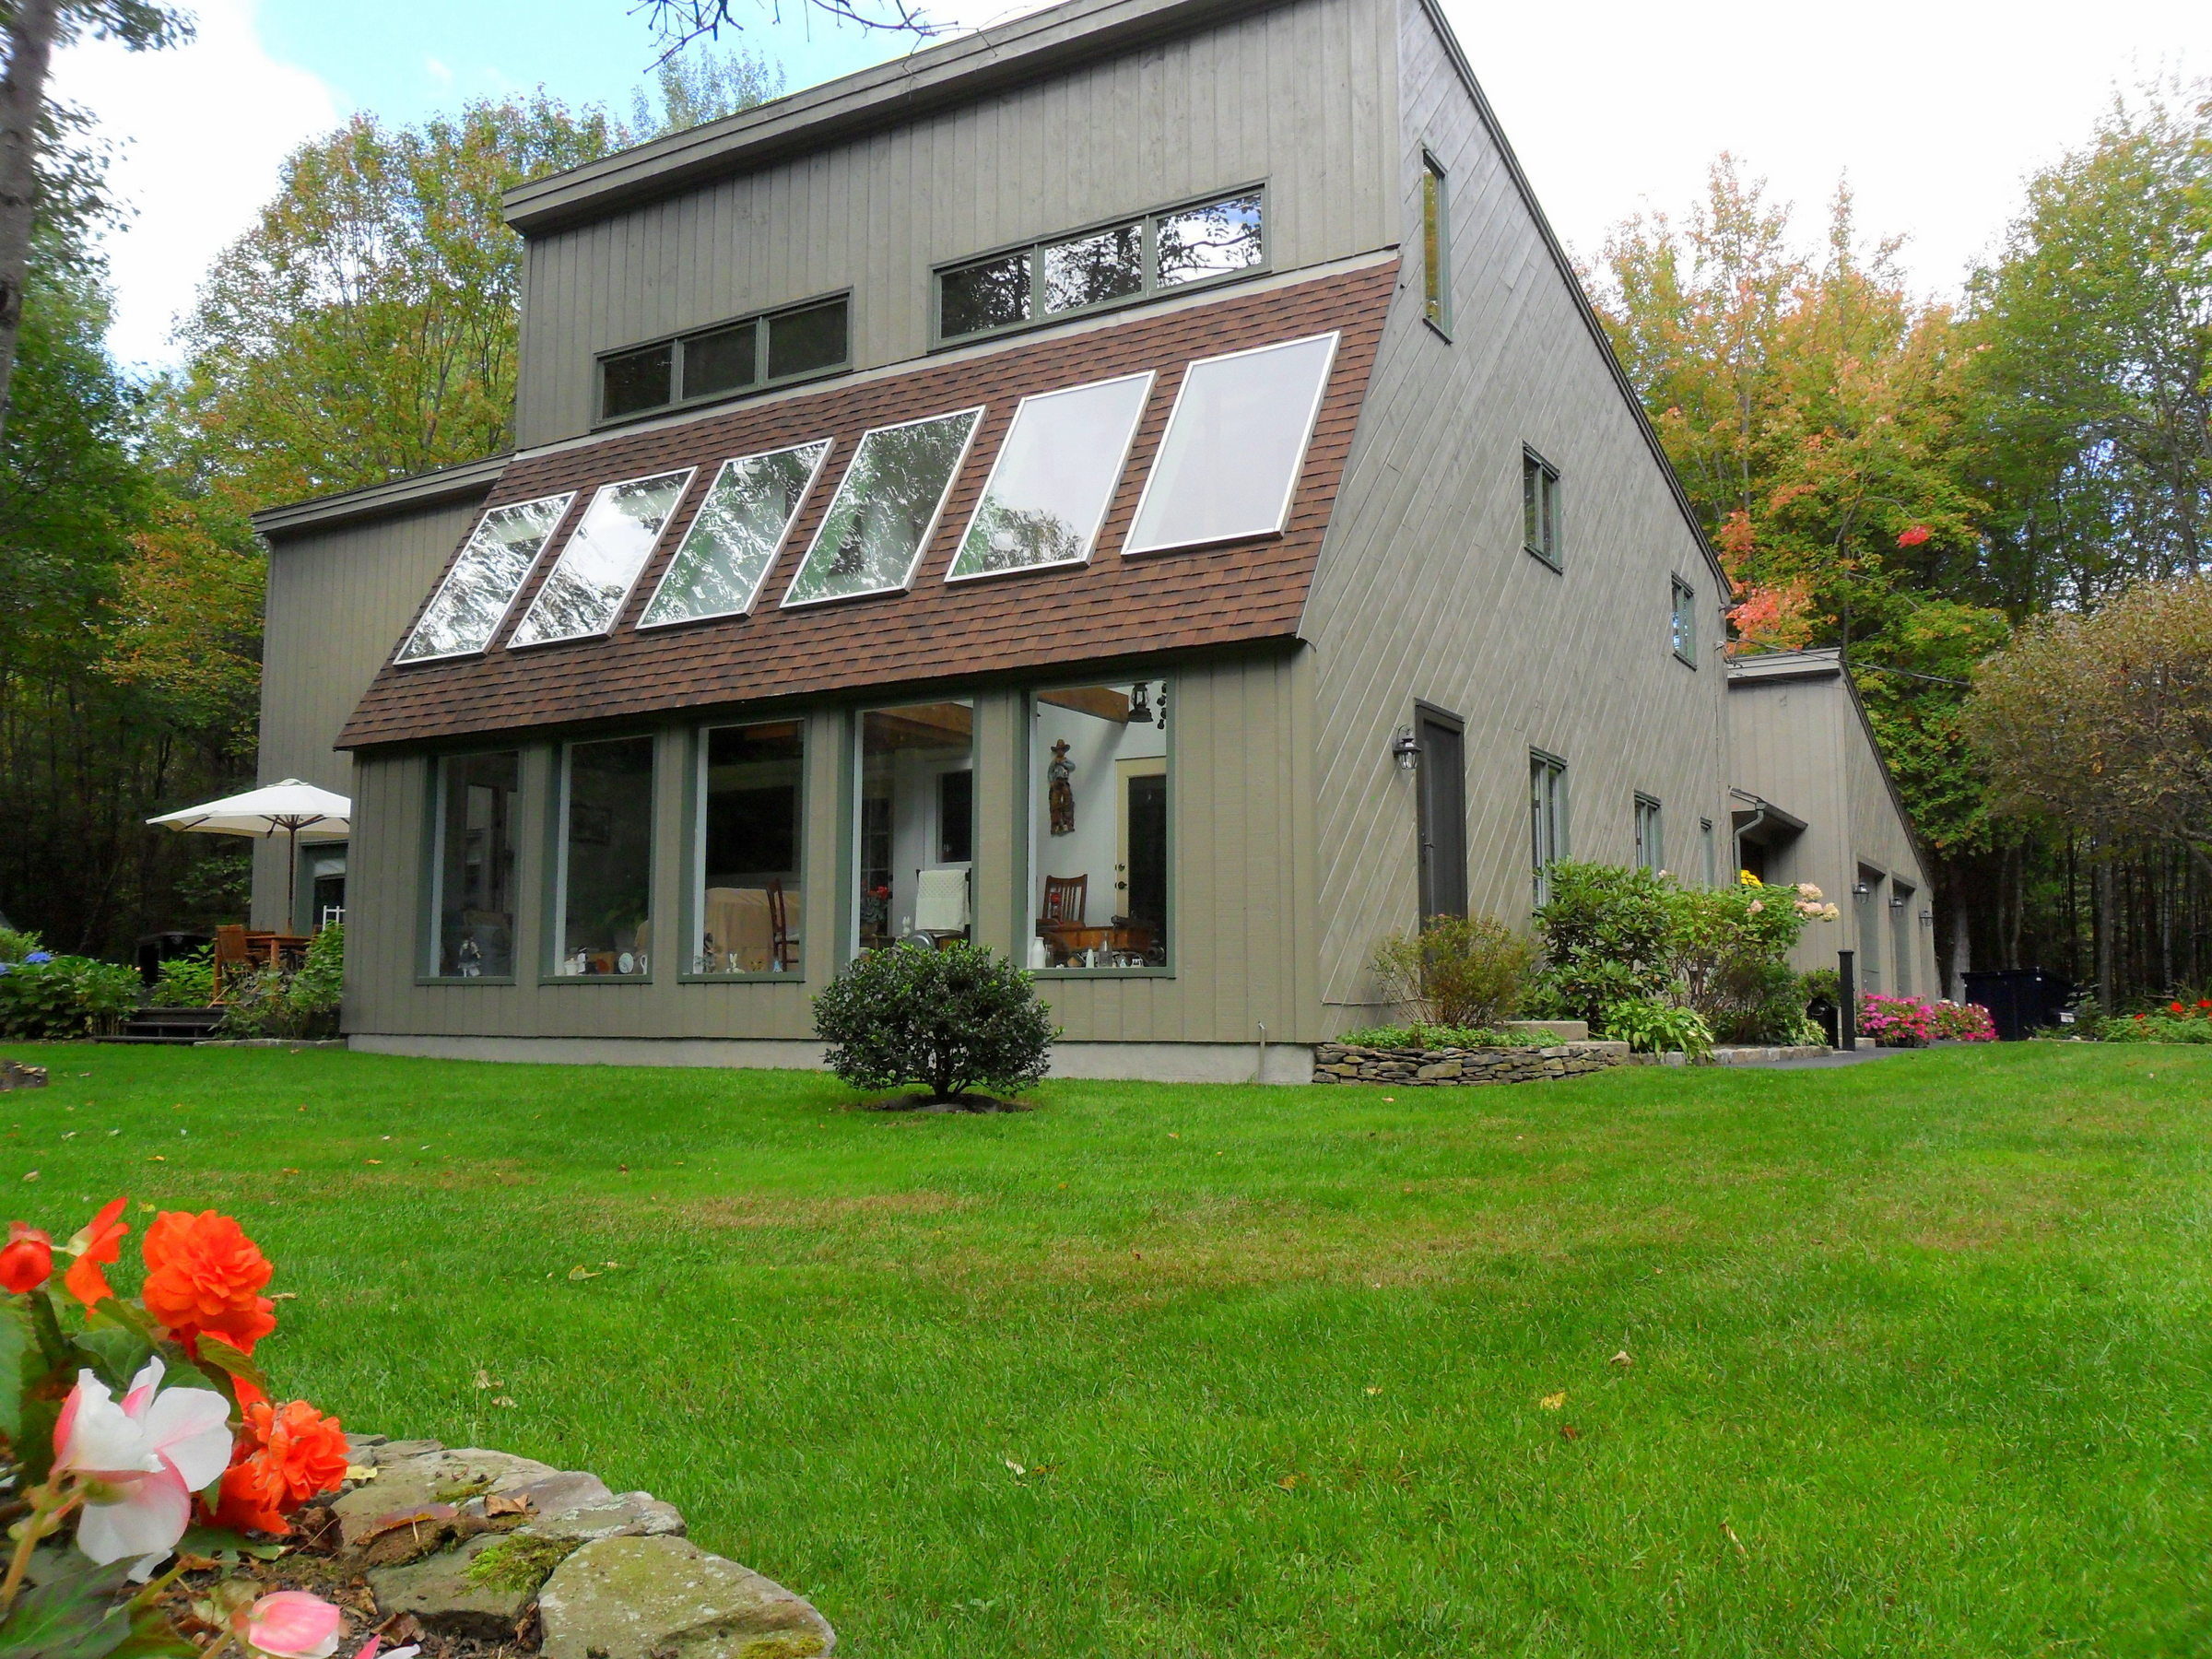 Maine Houses For Sale 28 Images Used Mobile Homes For